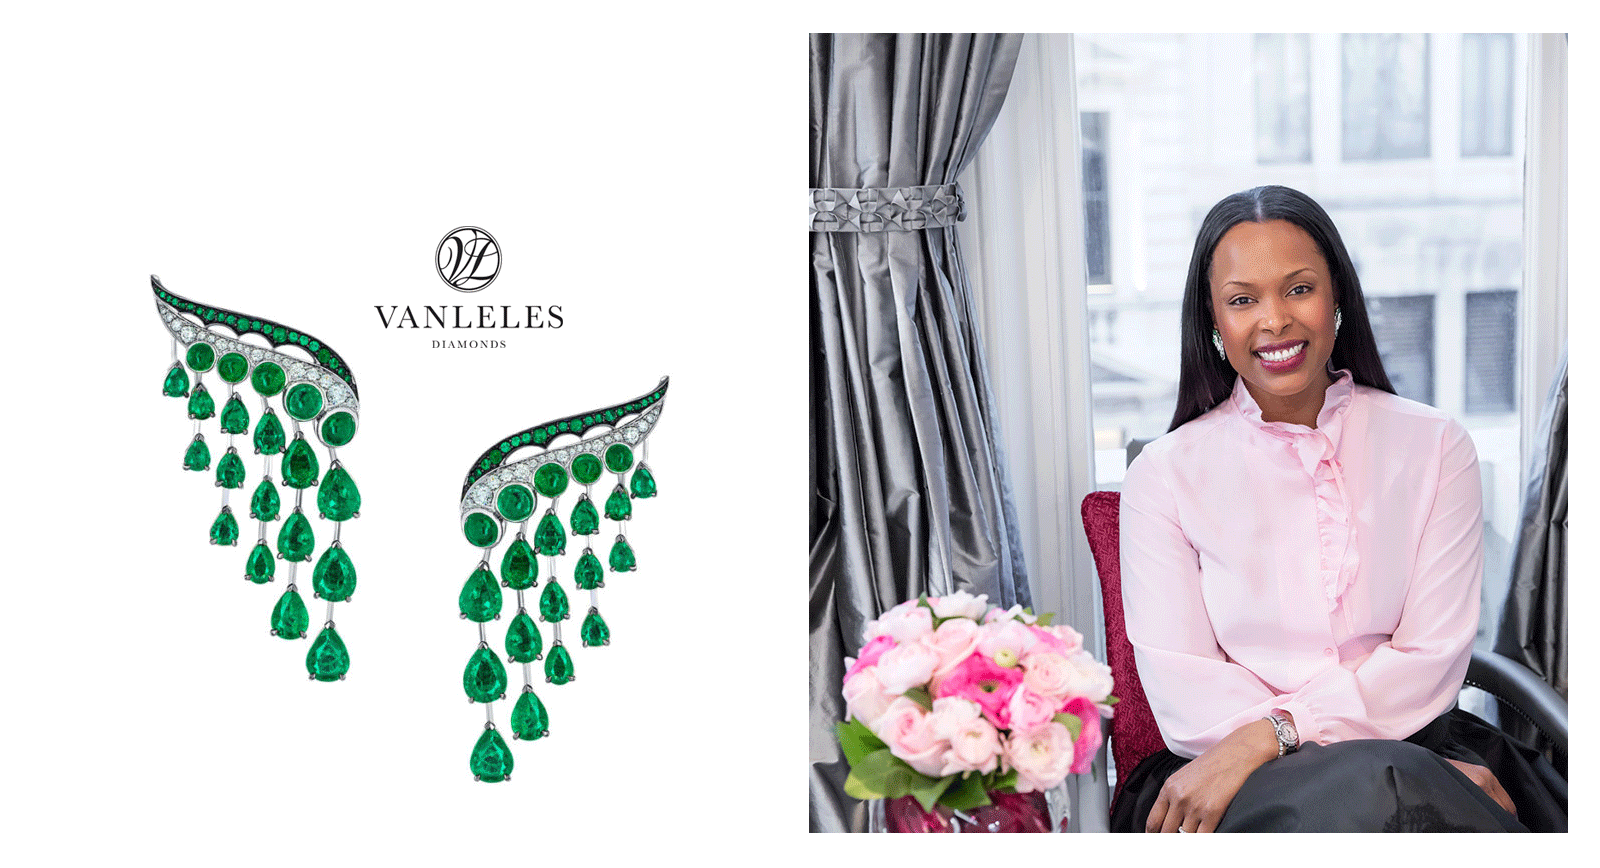 A Great Union: Gemfields and Vanleles Debut A High Jewellery Collection